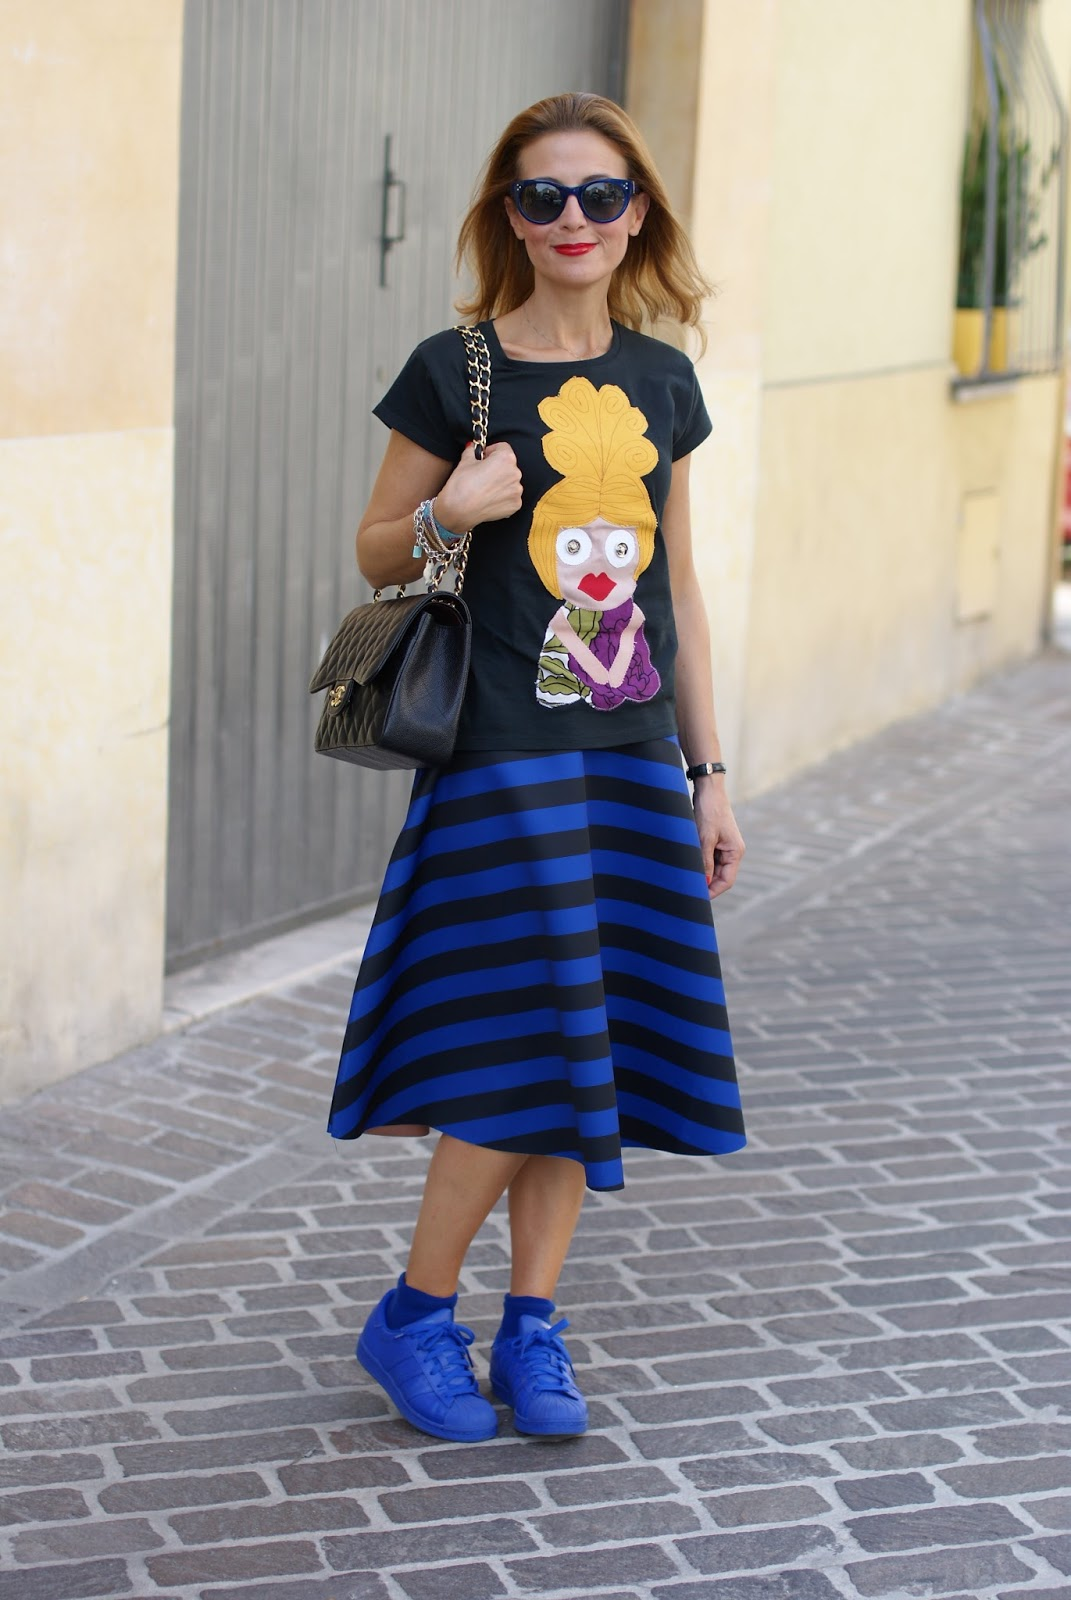 Chanel 2.55 bag and striped midi skirt worn with adidas supercolor blue sneakers on Fashion and Cookies fashion blog, fashion blogger style